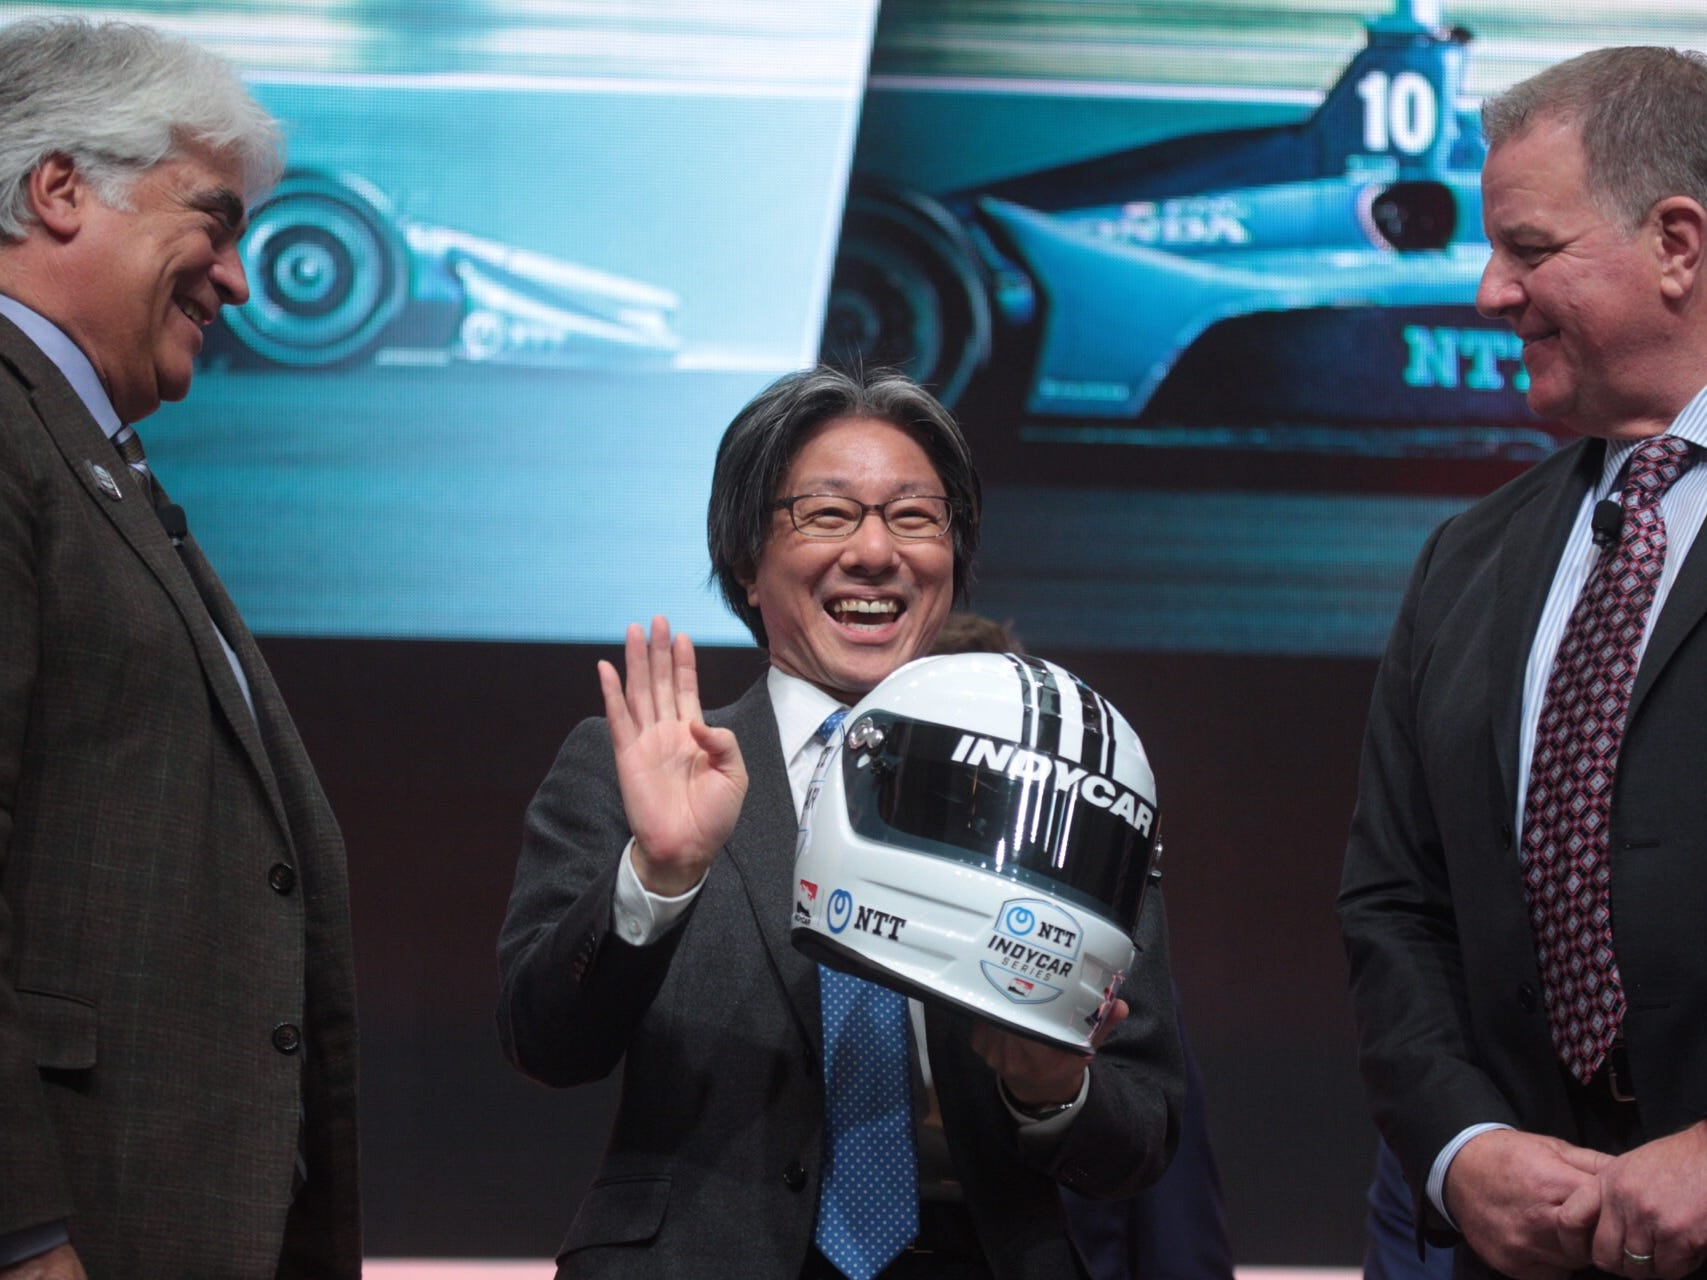 IndyCar announces NTT as primary sponsor at Detroit Auto Show